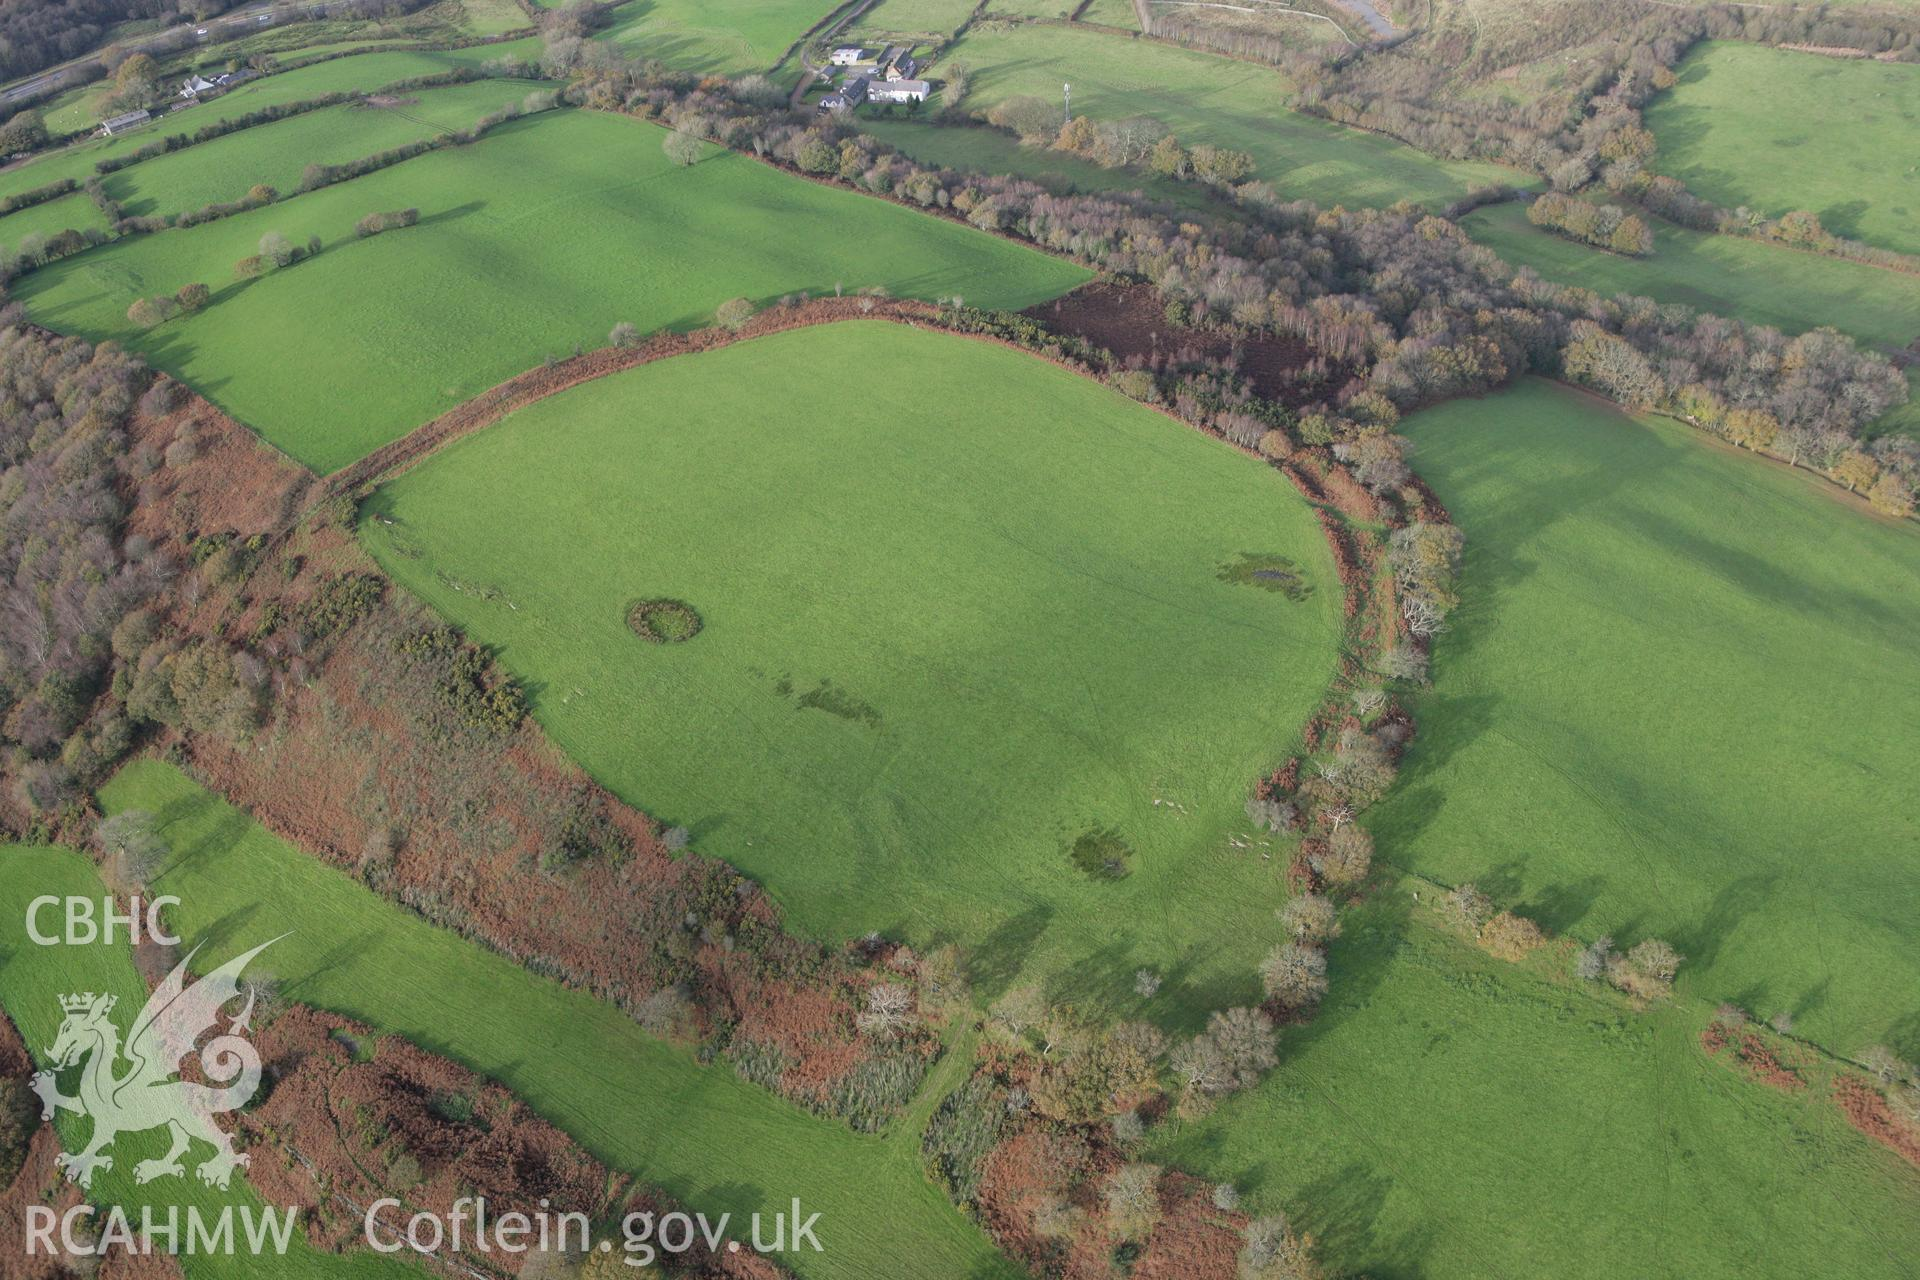 RCAHMW colour oblique photograph of Caerau Hillfort, Rhiwsaeson, Llantrisant. Taken by Toby Driver on 17/11/2011.